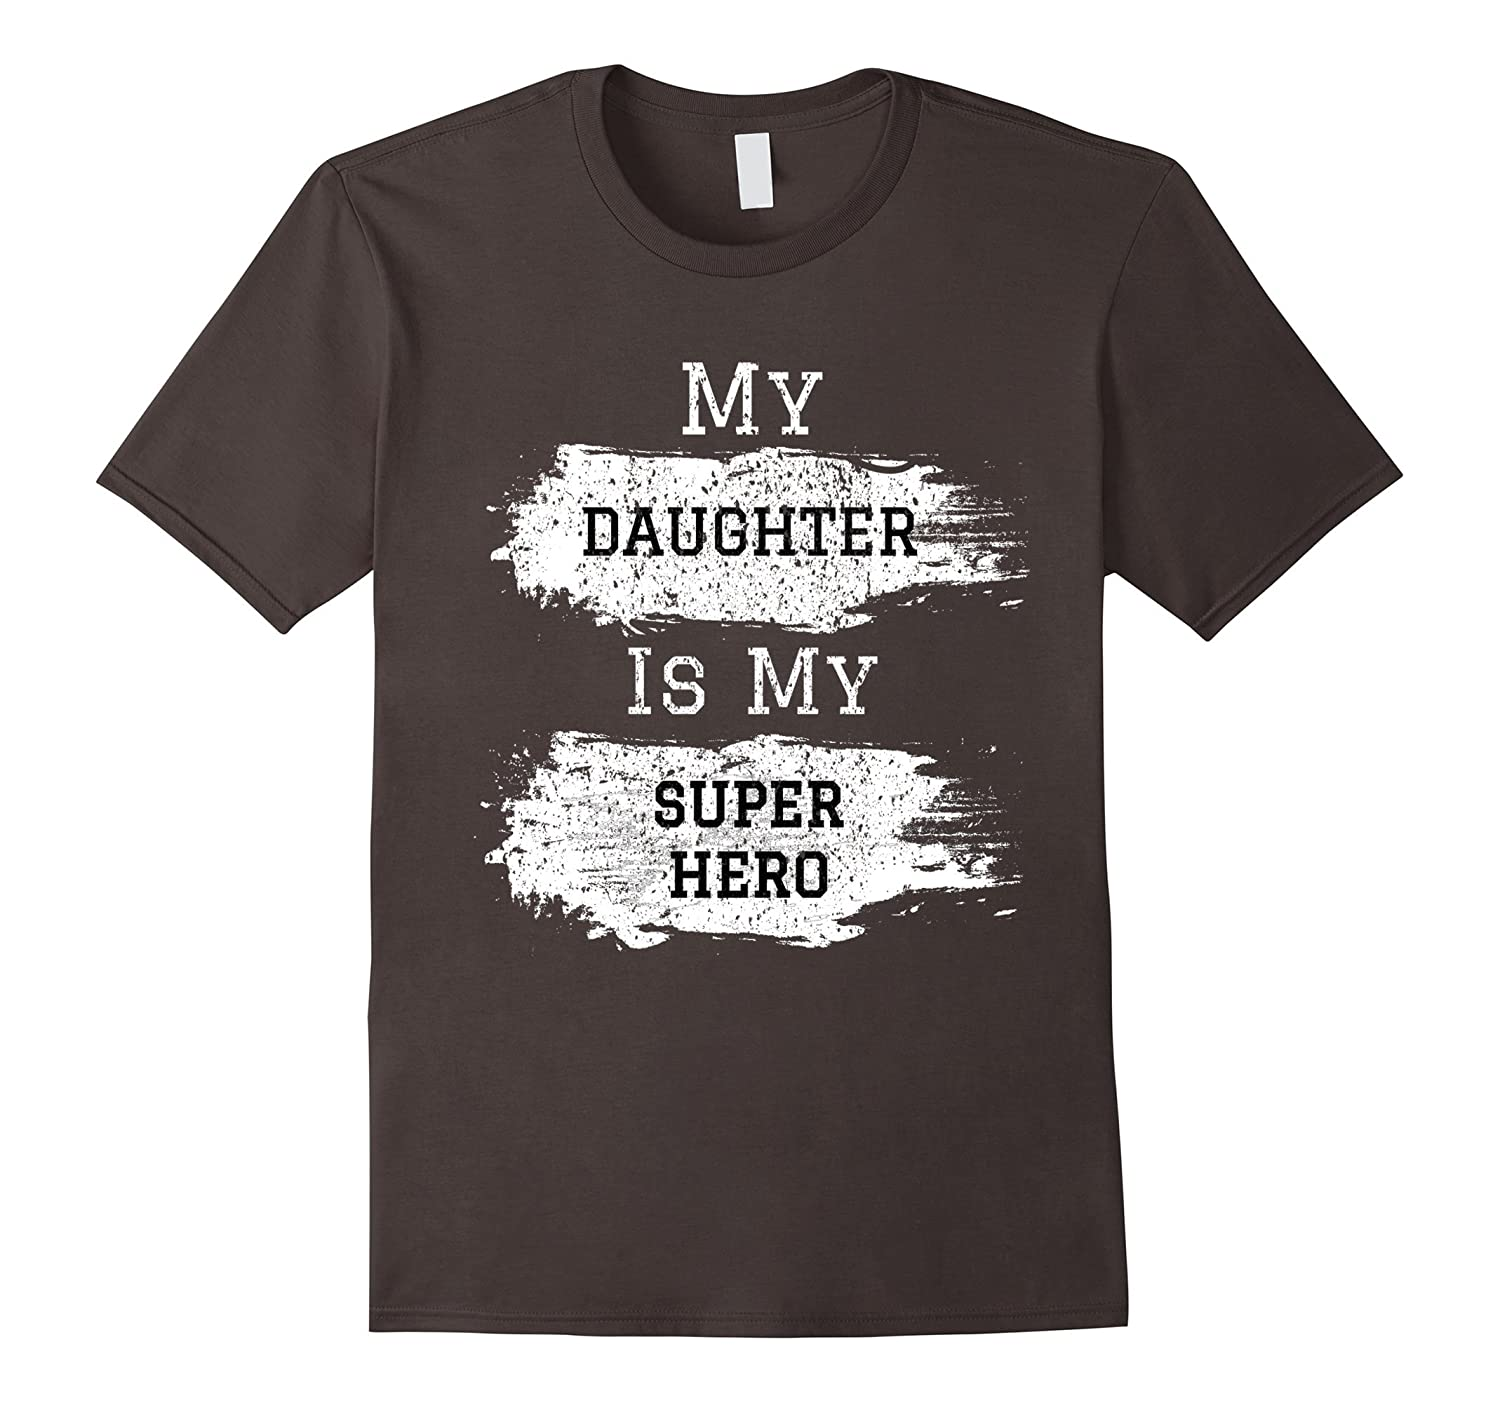 xmas gift idea for mom dad from daughter my superhero shirt anz